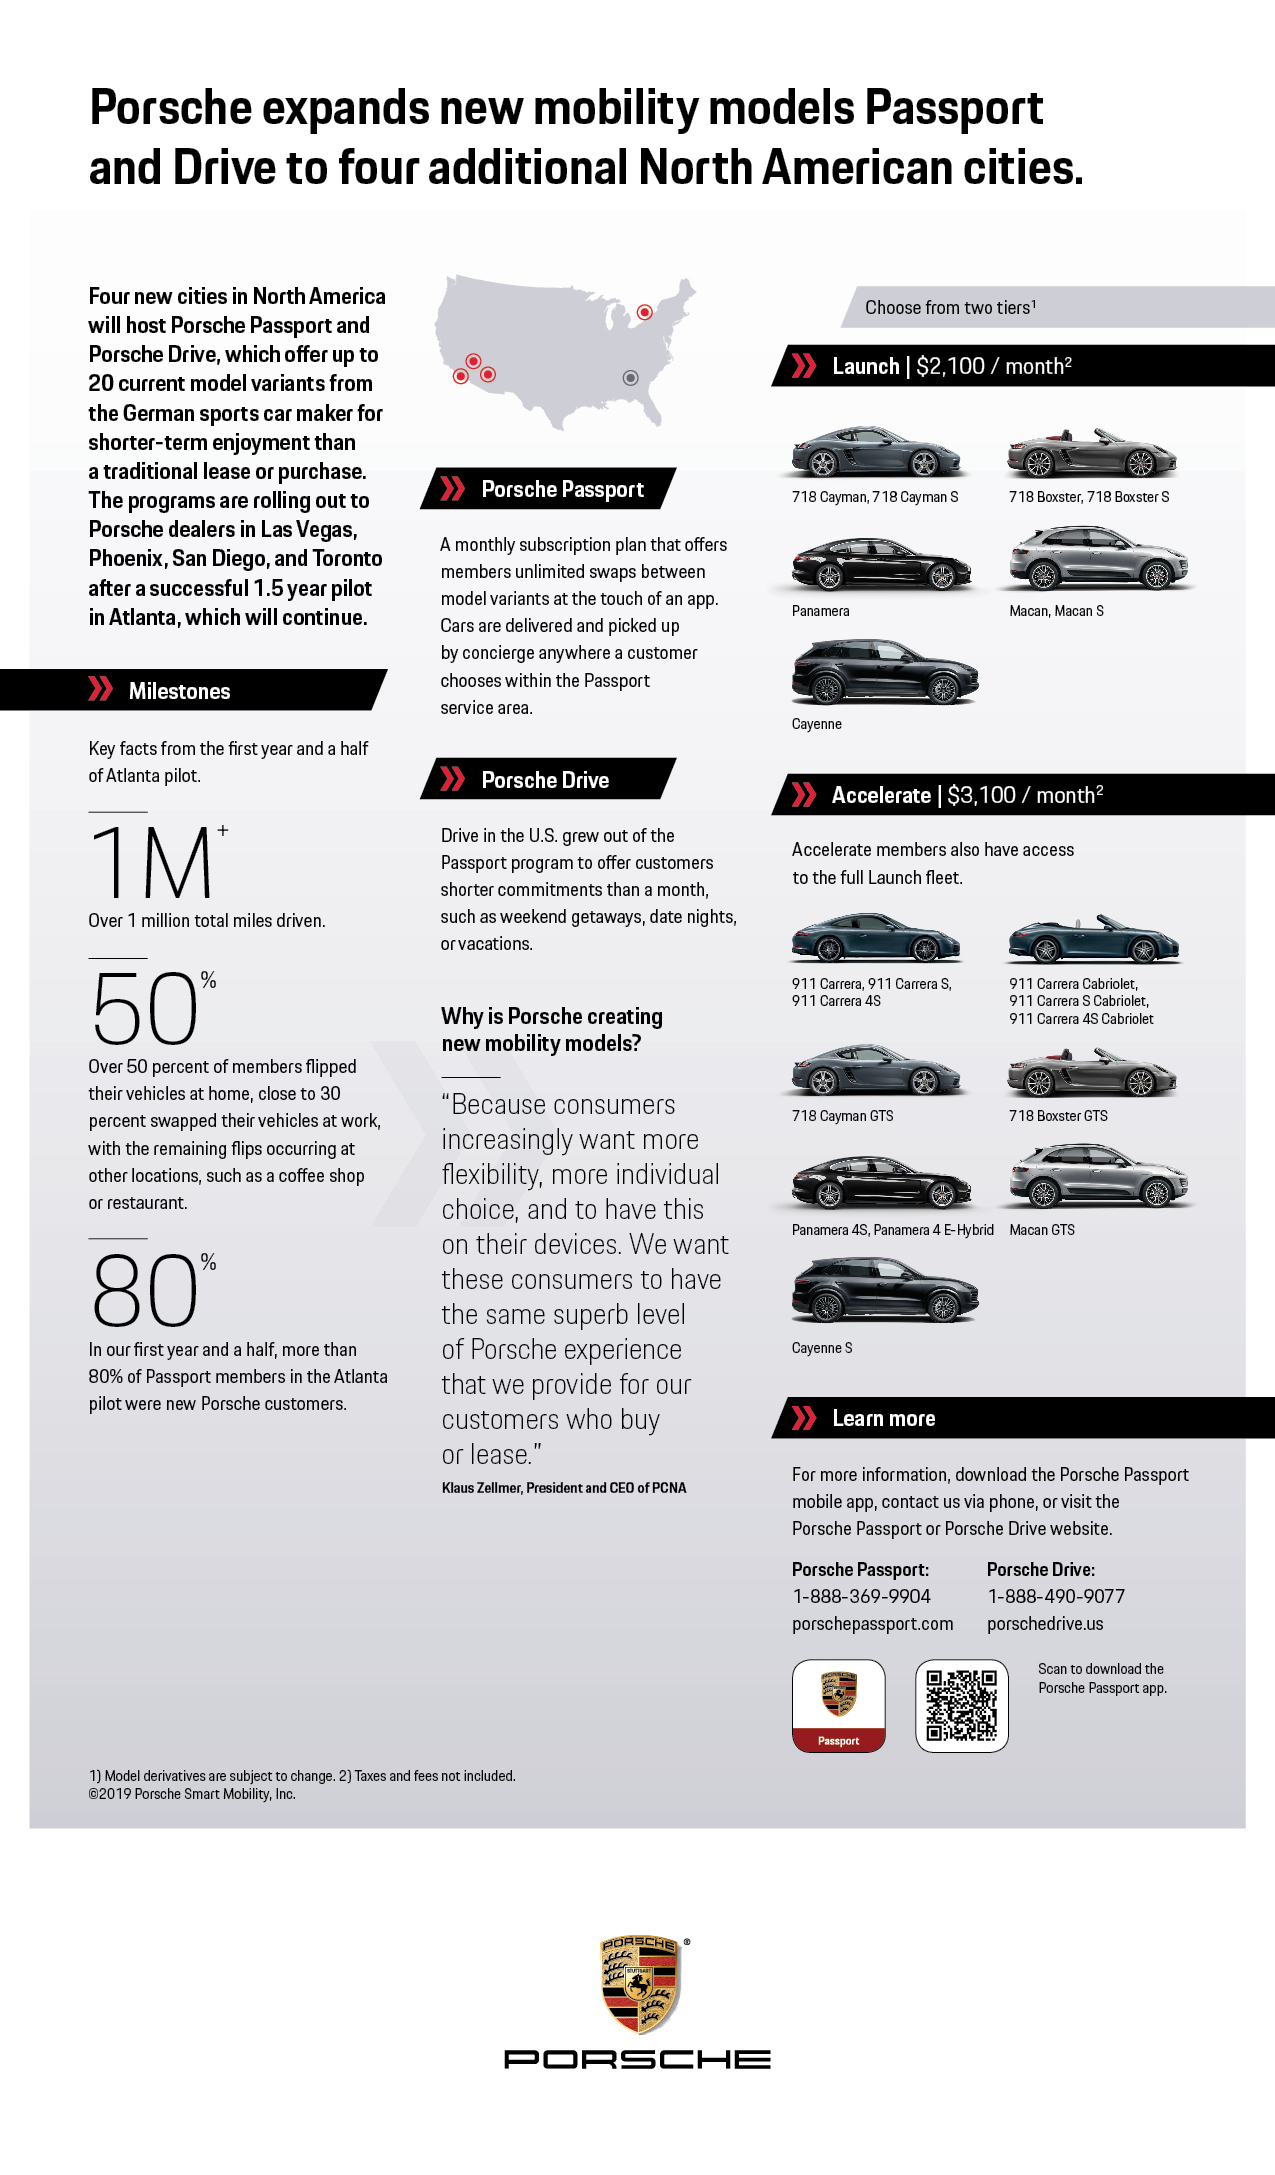 Porsche Expands New Mobility Models 'Passport' & 'Drive'